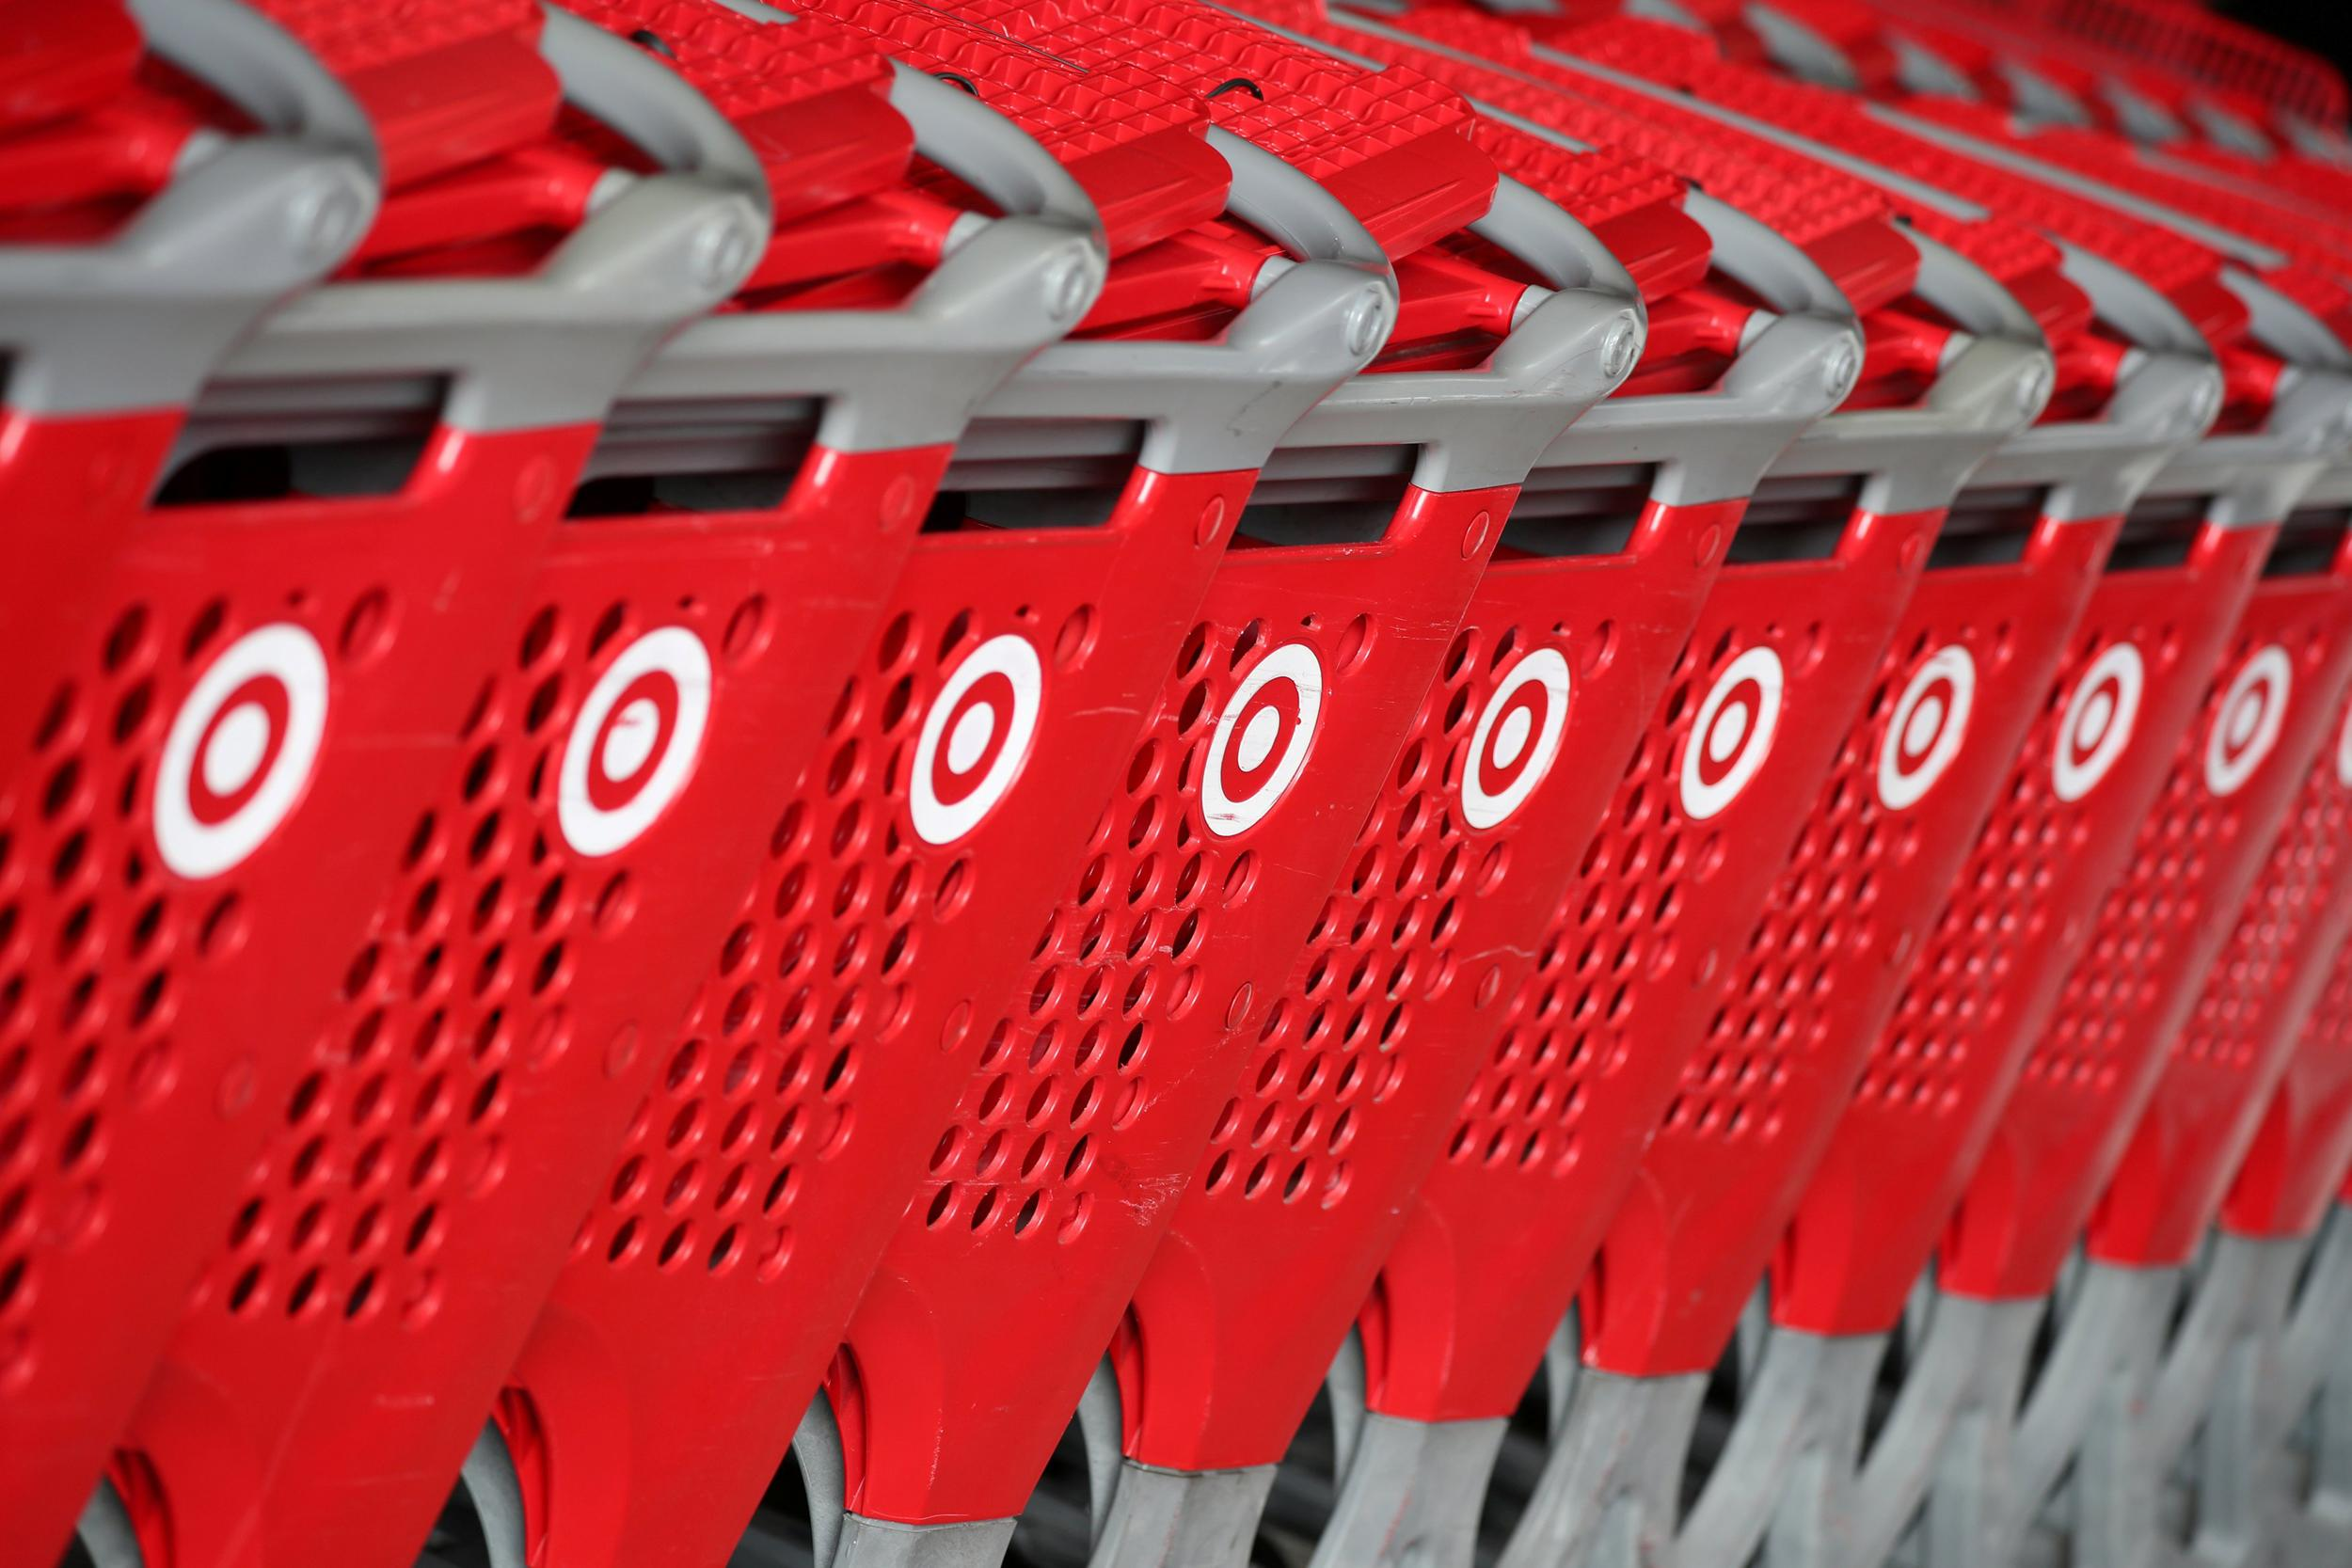 Video shows 2 men allegedly assaulting Target security guard over face mask rule